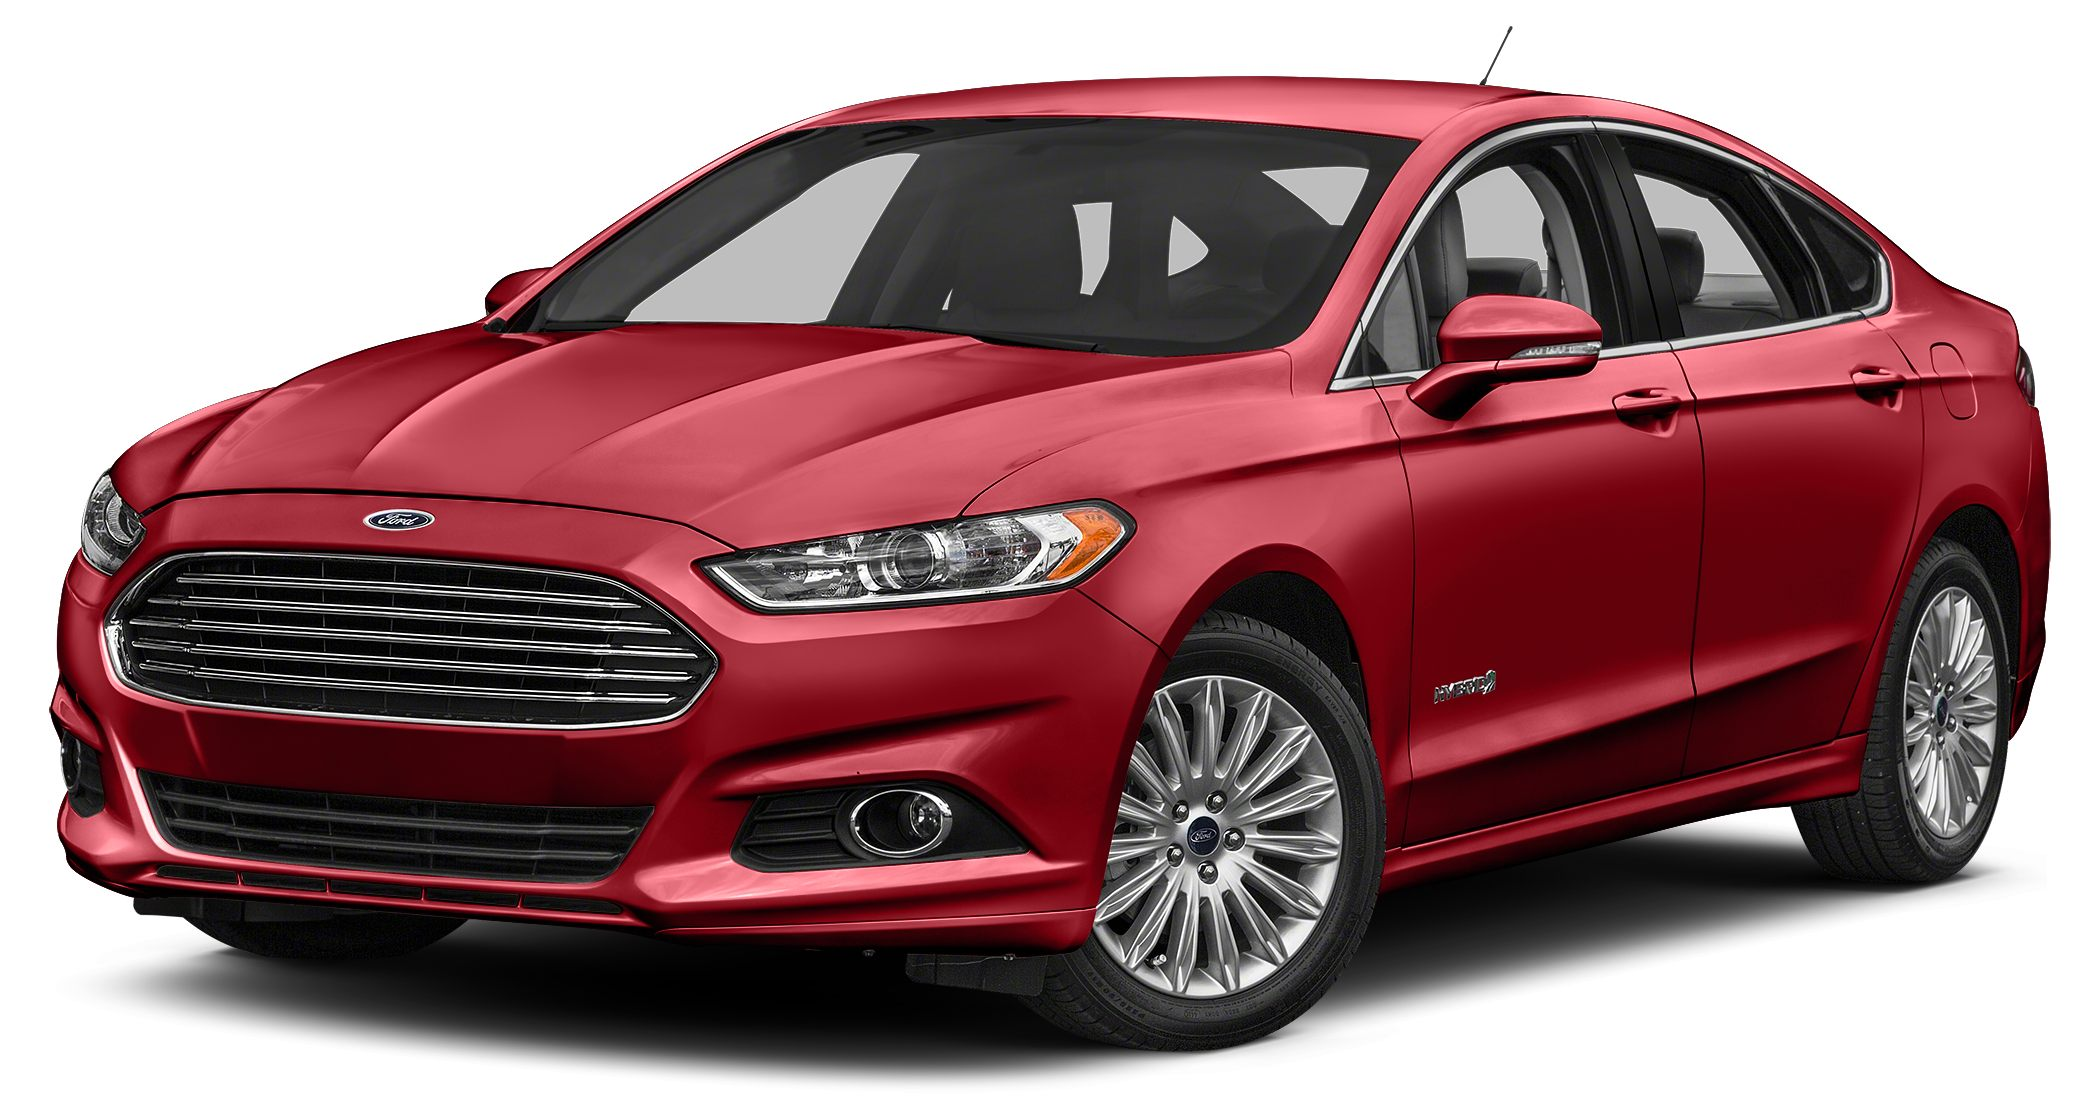 2016 Ford Fusion Hybrid SE The Ford Fusion has the upscale style and front grille that resemble hi